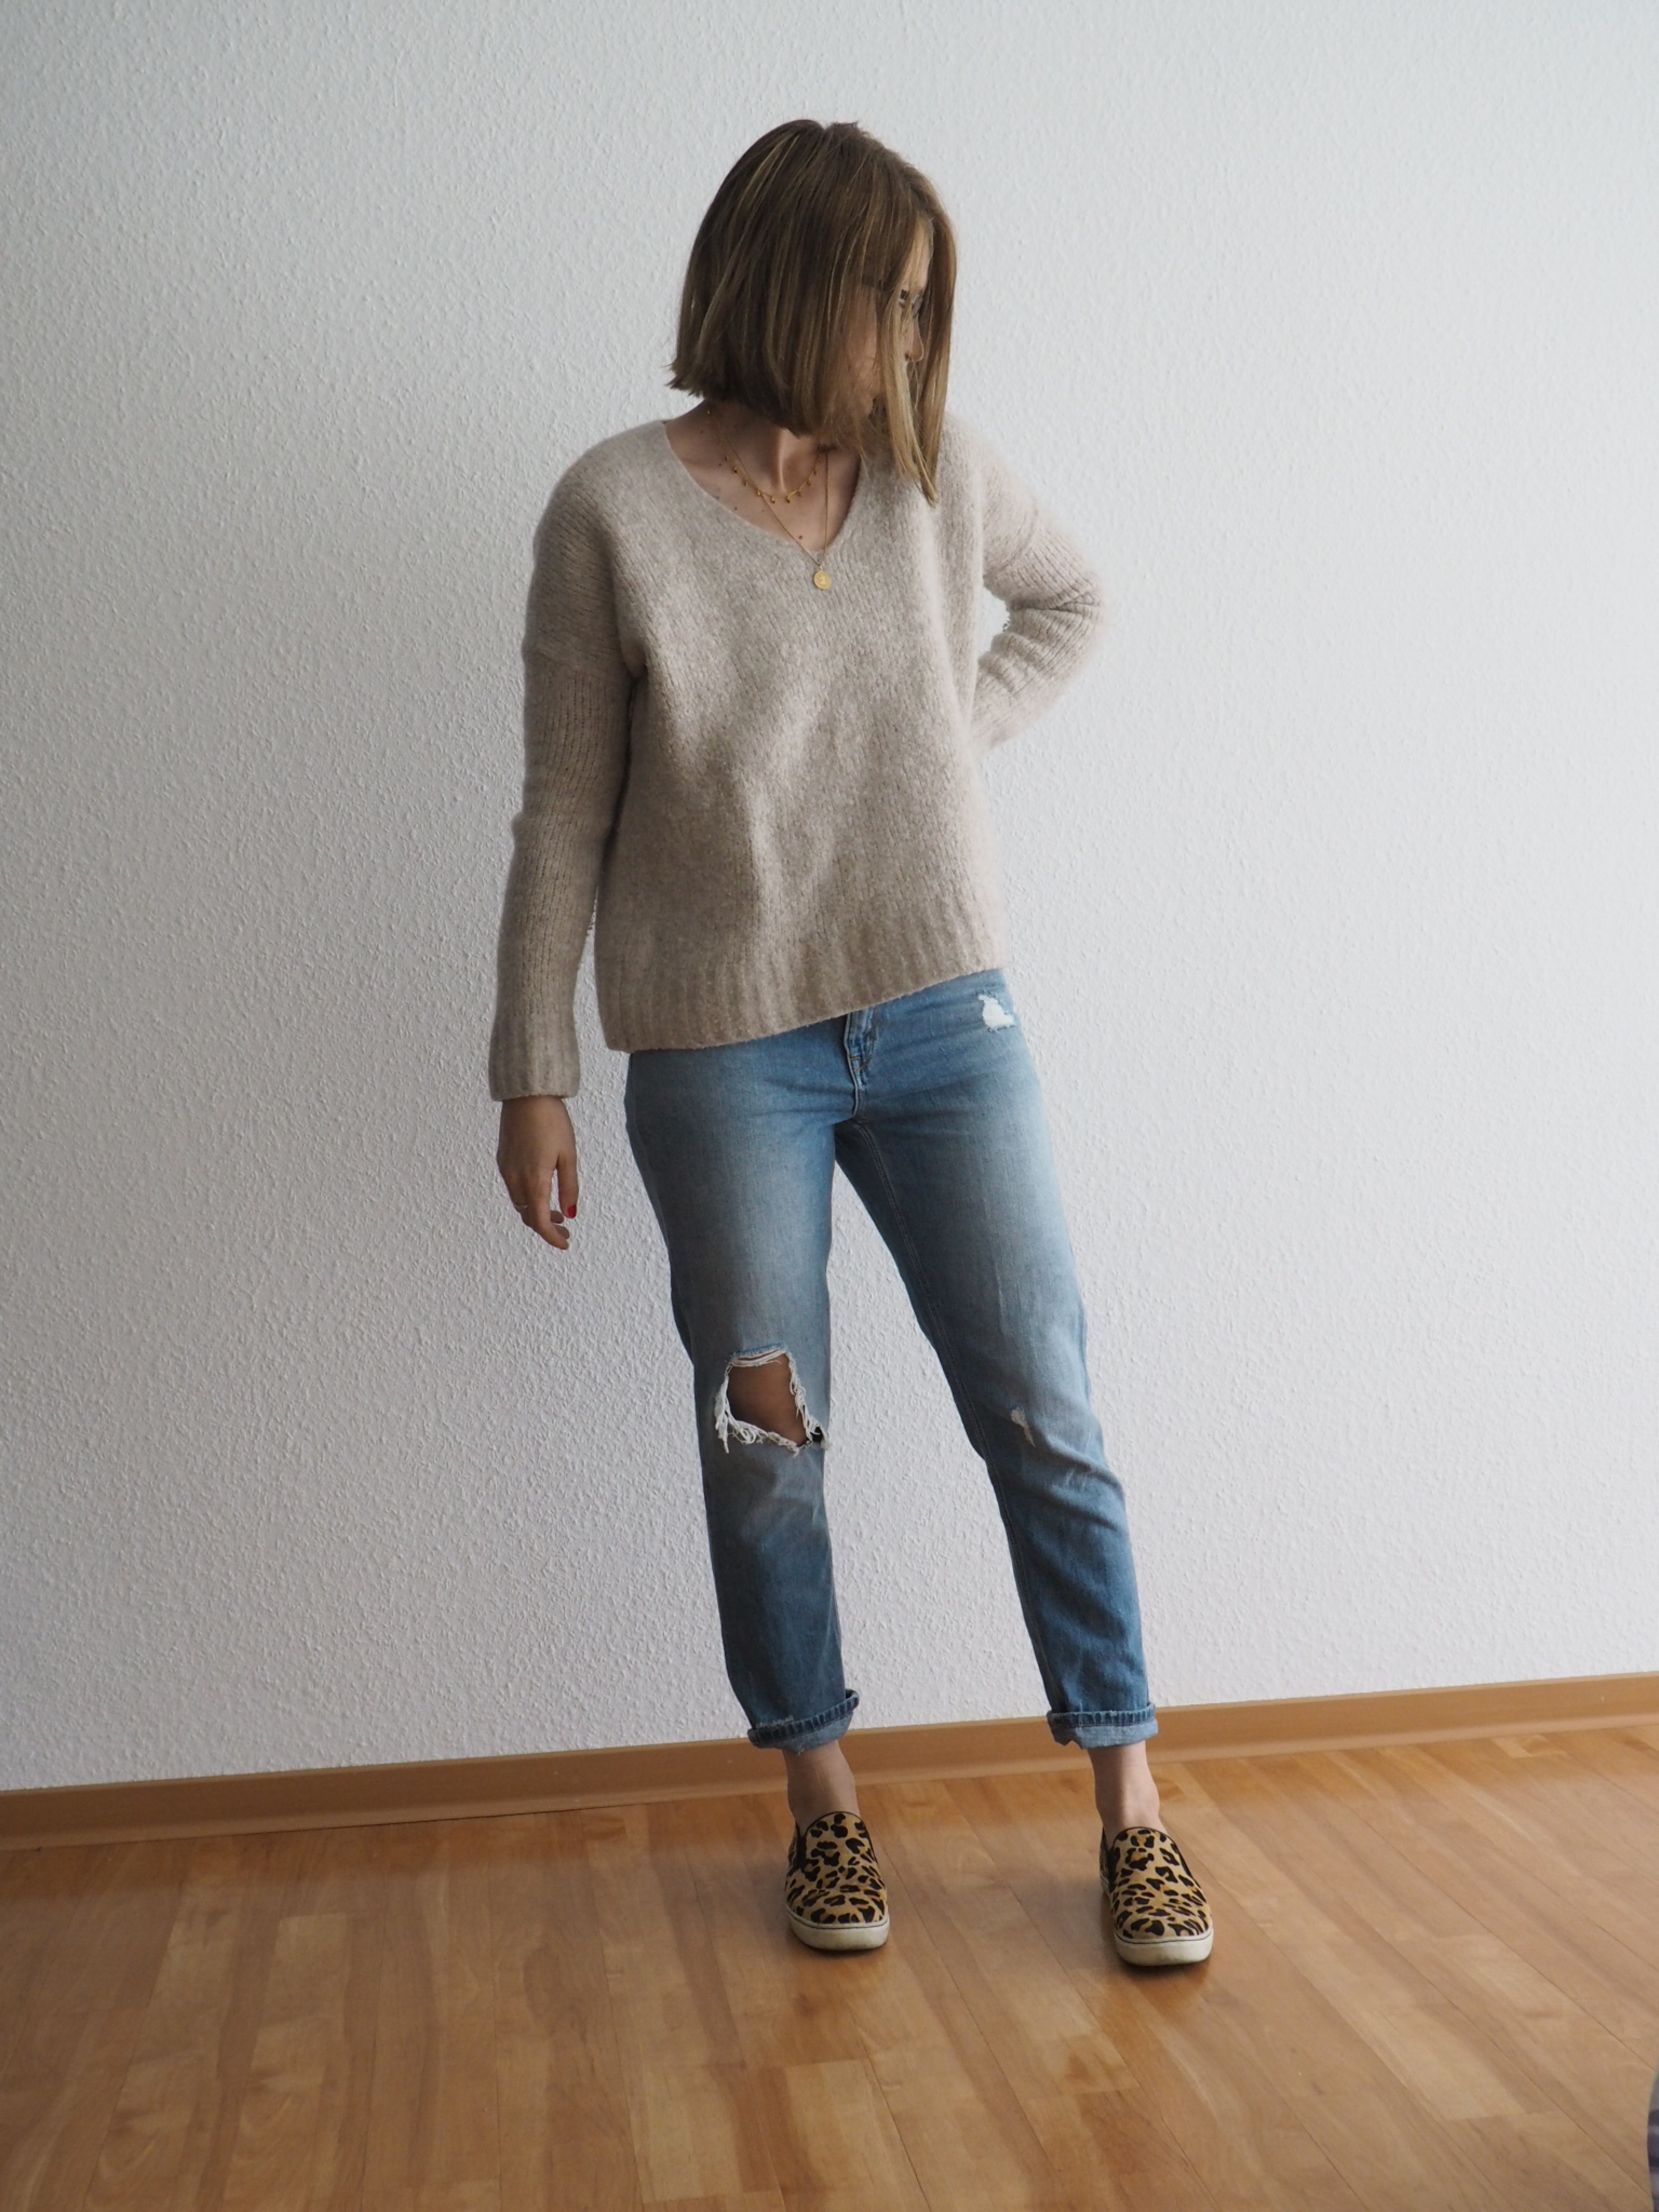 Boyfriend Jeans Leo-Sneaker Outfit - Edited Pullover Look Herbst